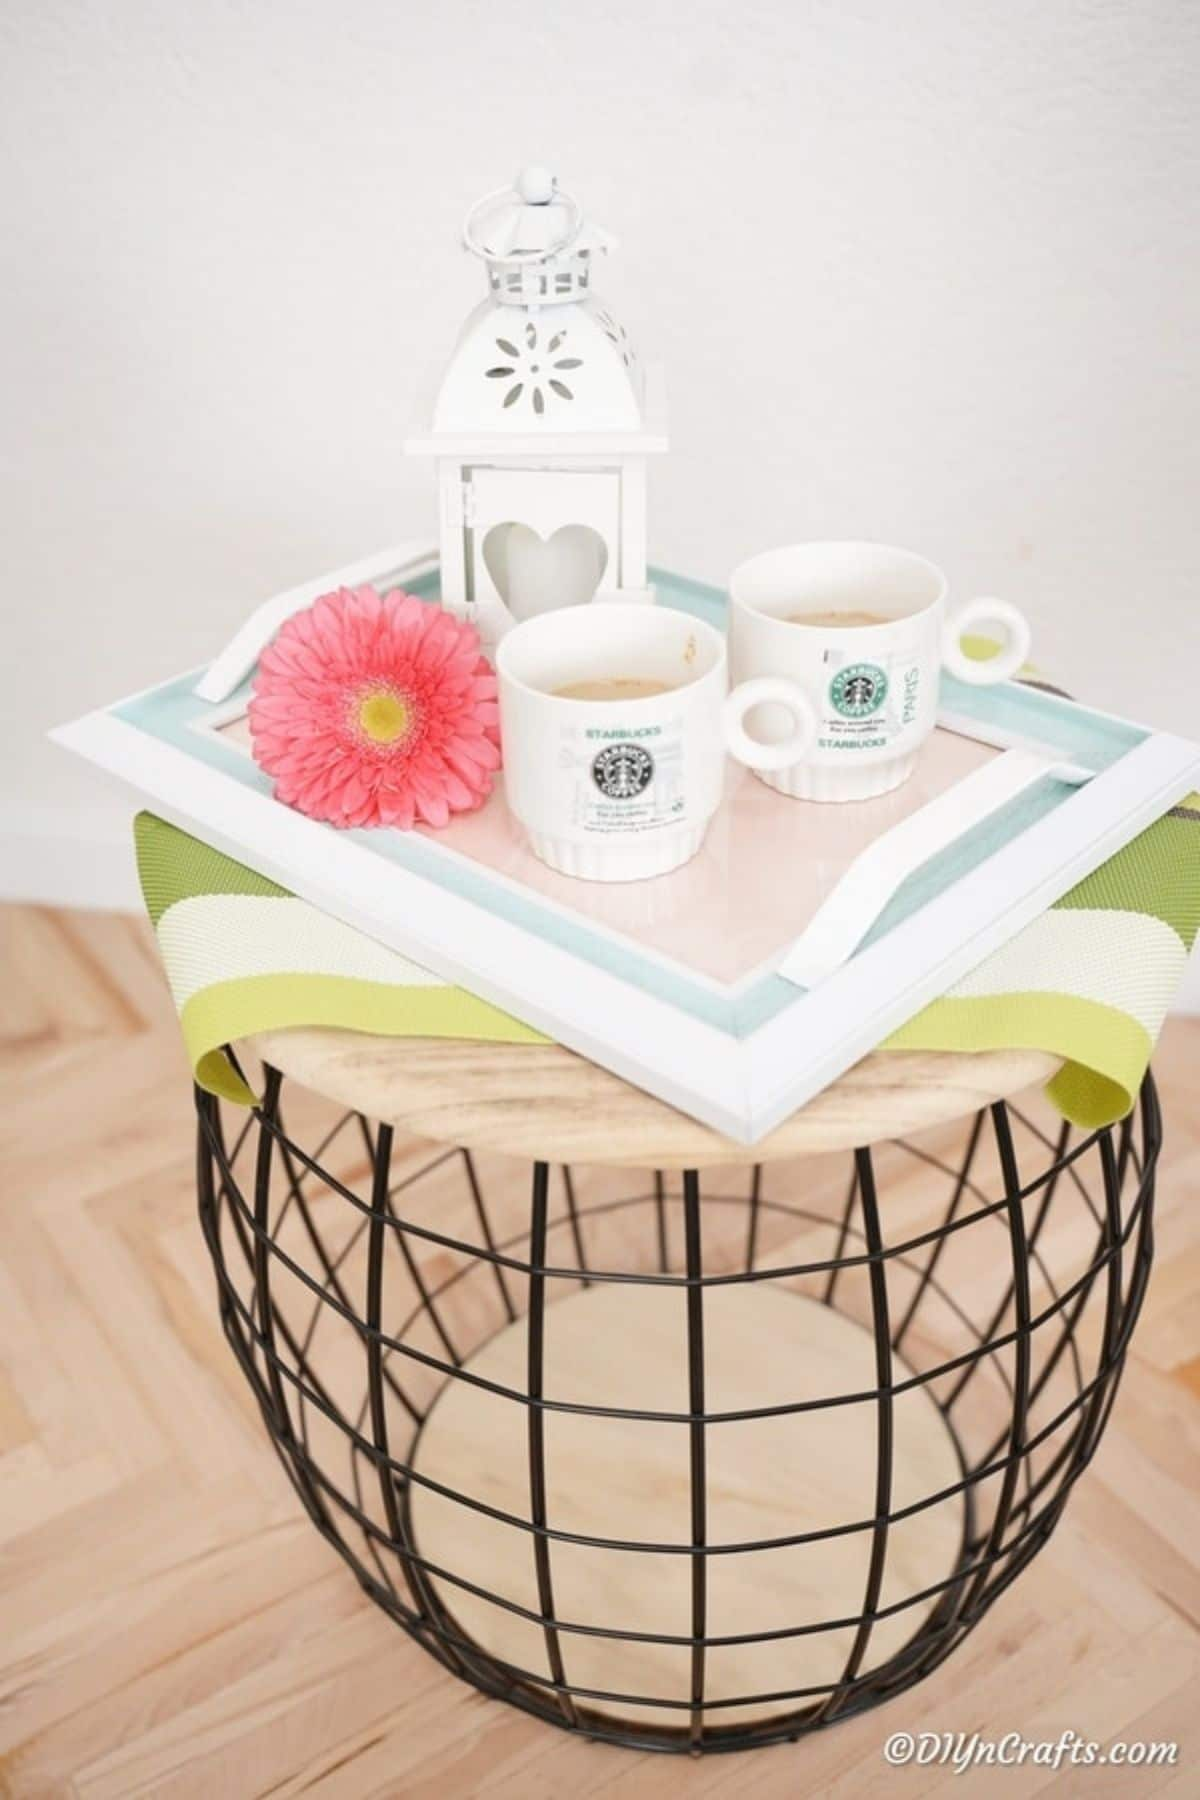 Tray on basket table